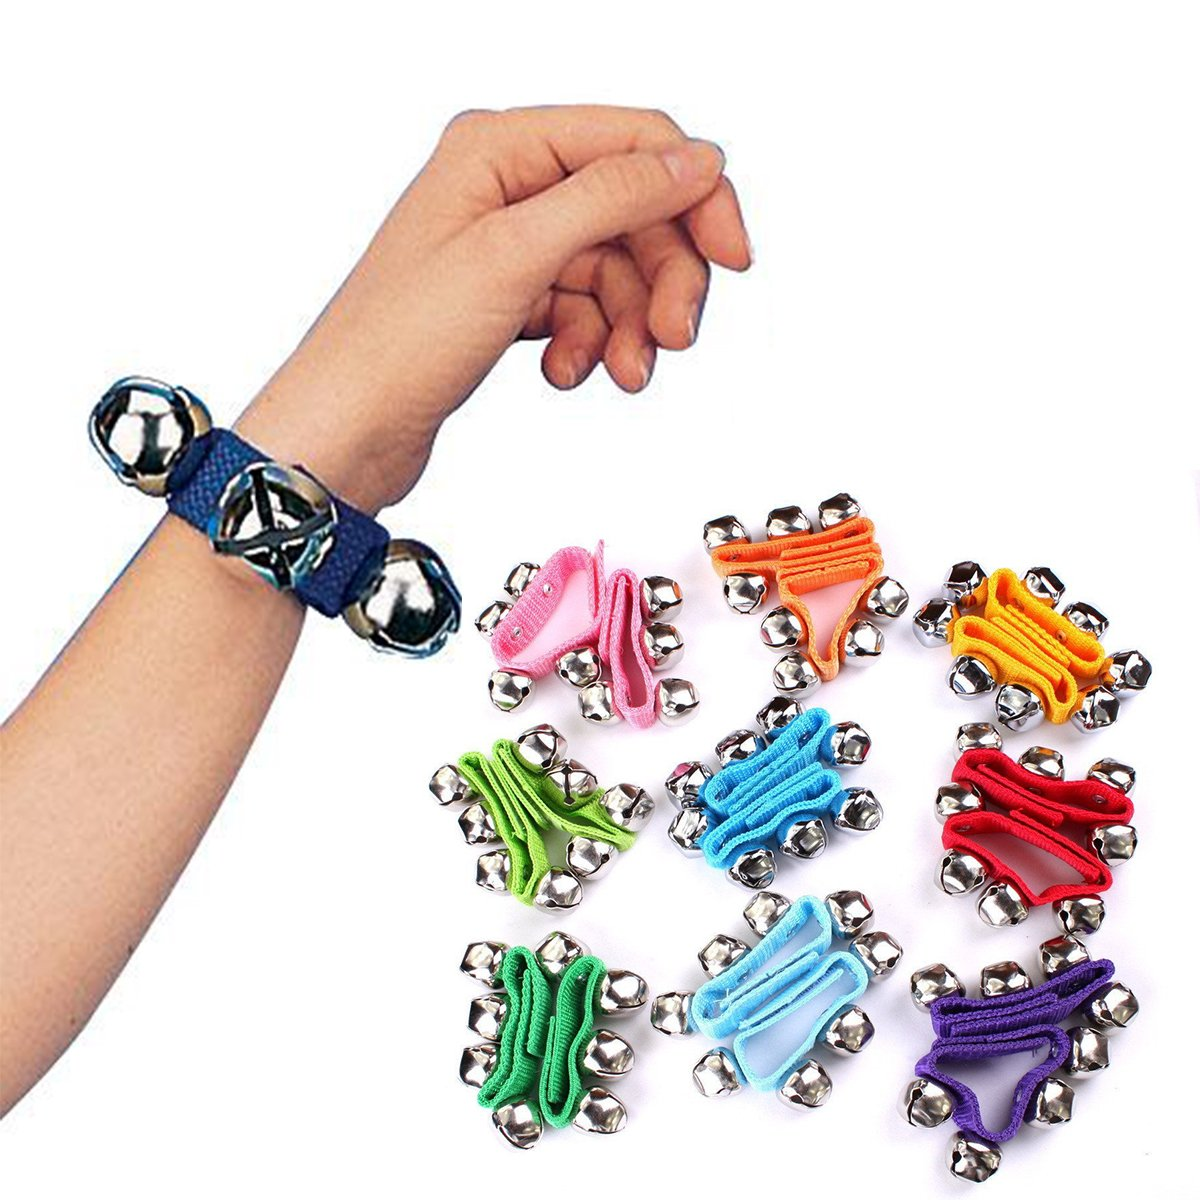 Band Wrist Bells,LLOP Musical Rhythm Toys Wrist Bells and Ankle Bells Wrist Foot Bell Instrument Percussion Orchestra Rattles Toy For Children Kids (1Pcs, Blue)